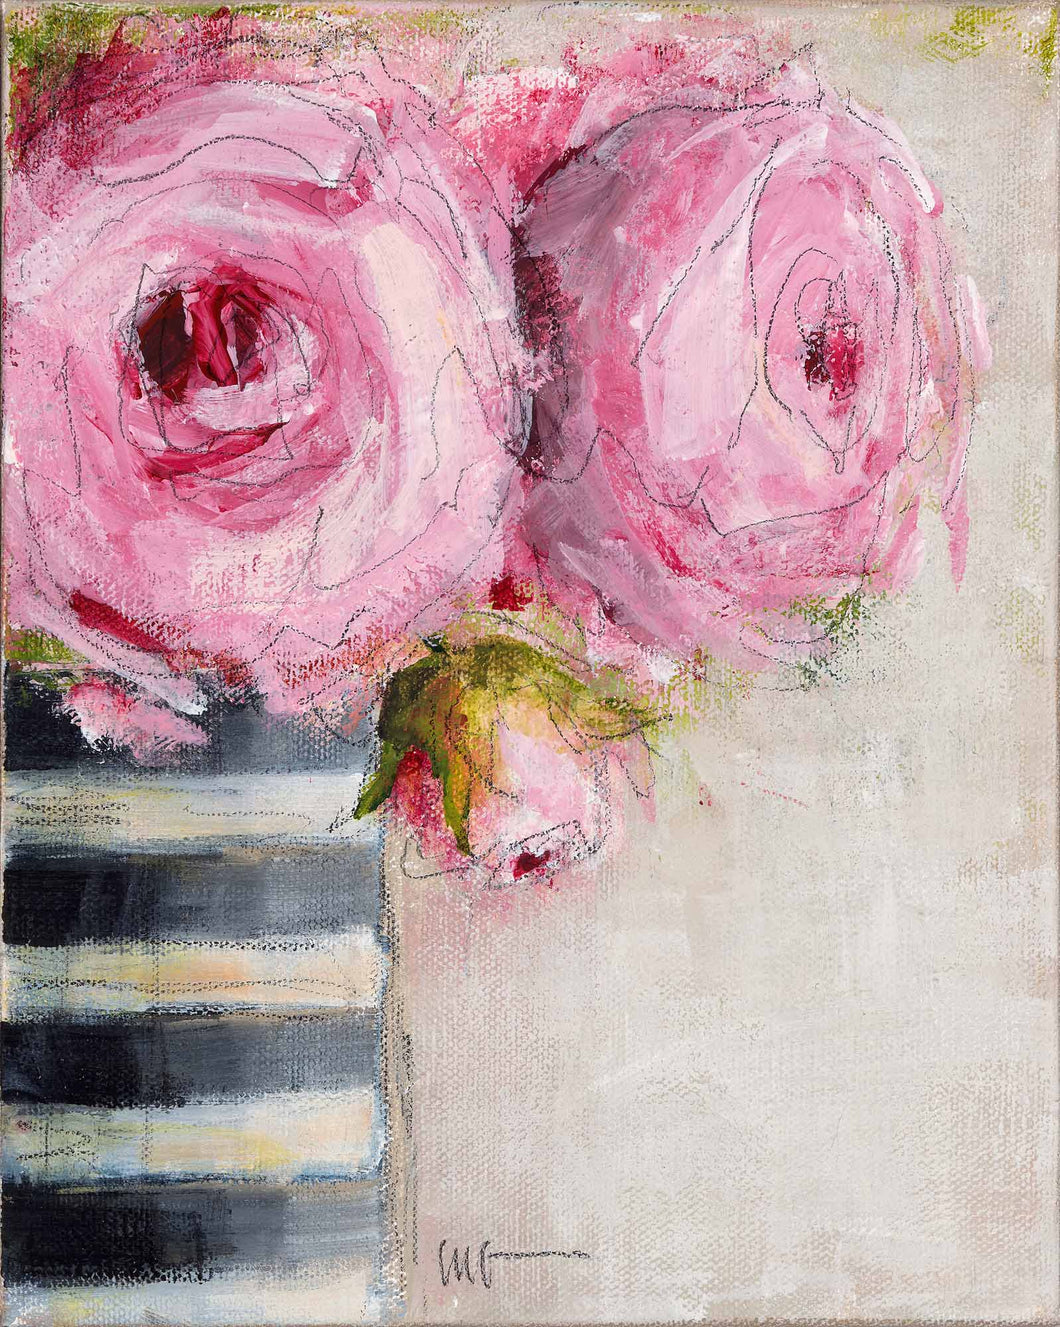 Pink Roses in Black & White Striped Vase